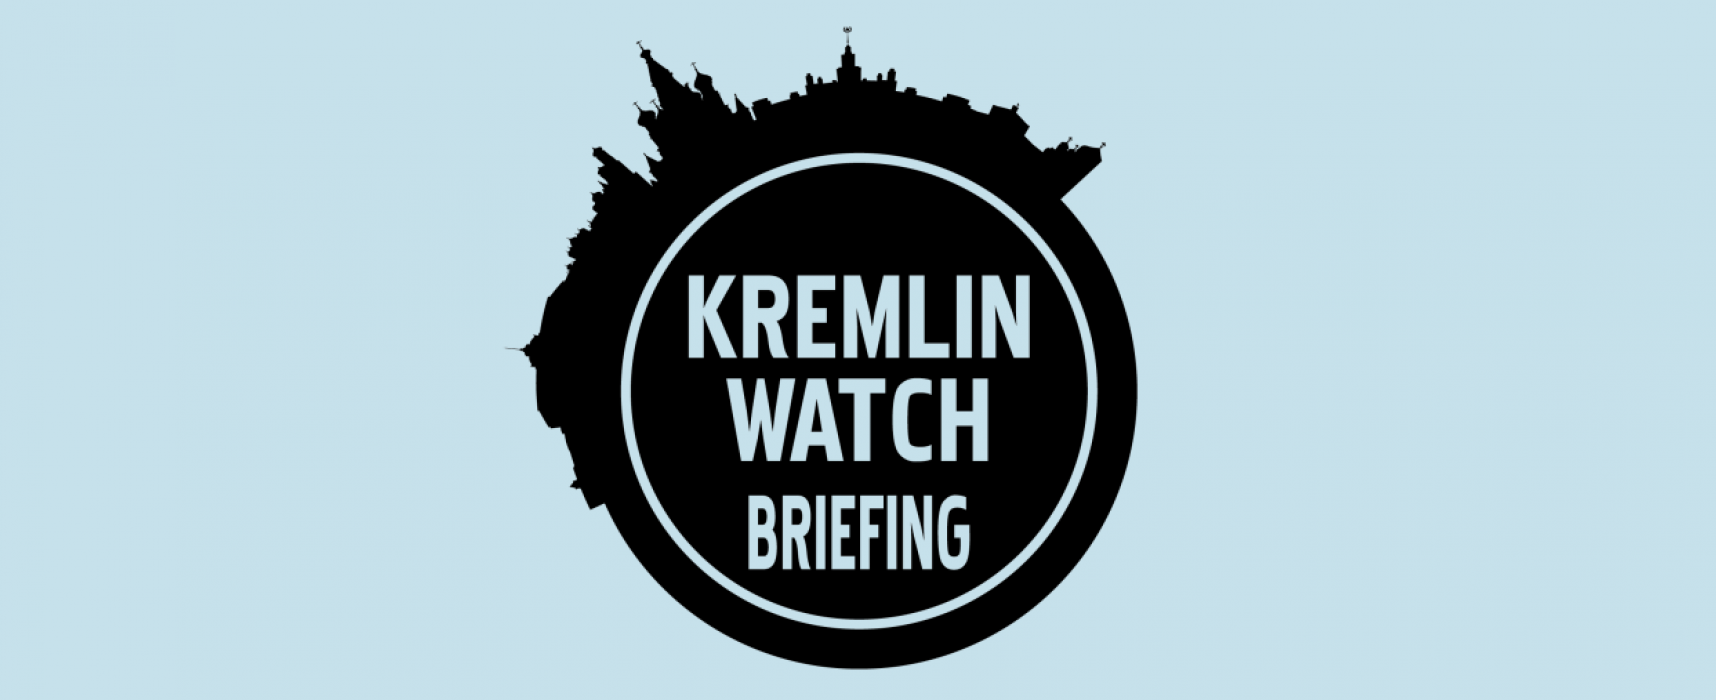 Kremlin Watch Briefing: Two Russian intelligence agents apprehended in Davos last year